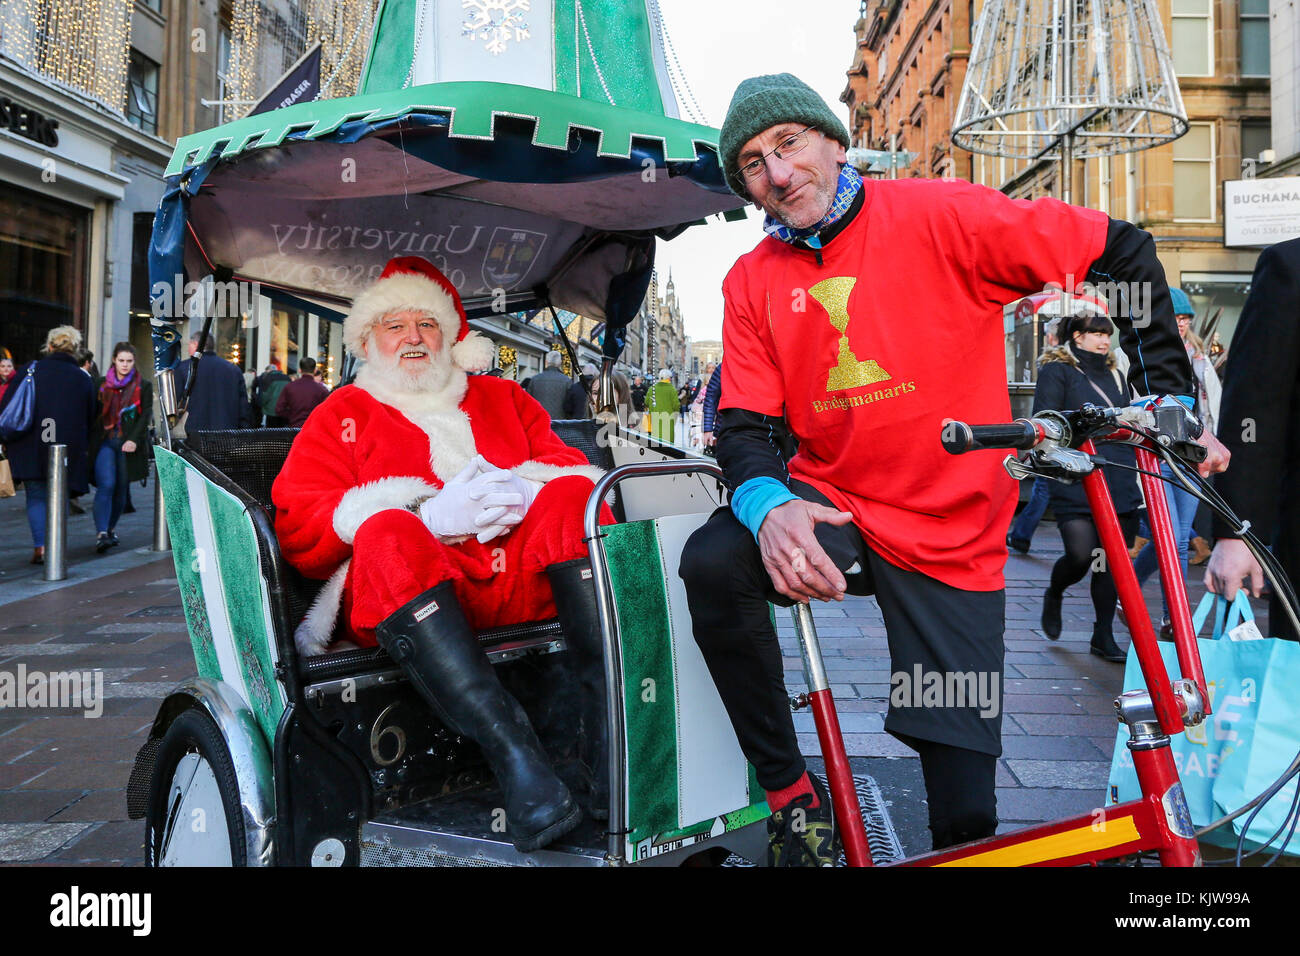 Glasgow, UK. 26th Nov, 2017. 'Glasgow Loves Christmas' annual street carnival is a multicultural, community - Stock Image